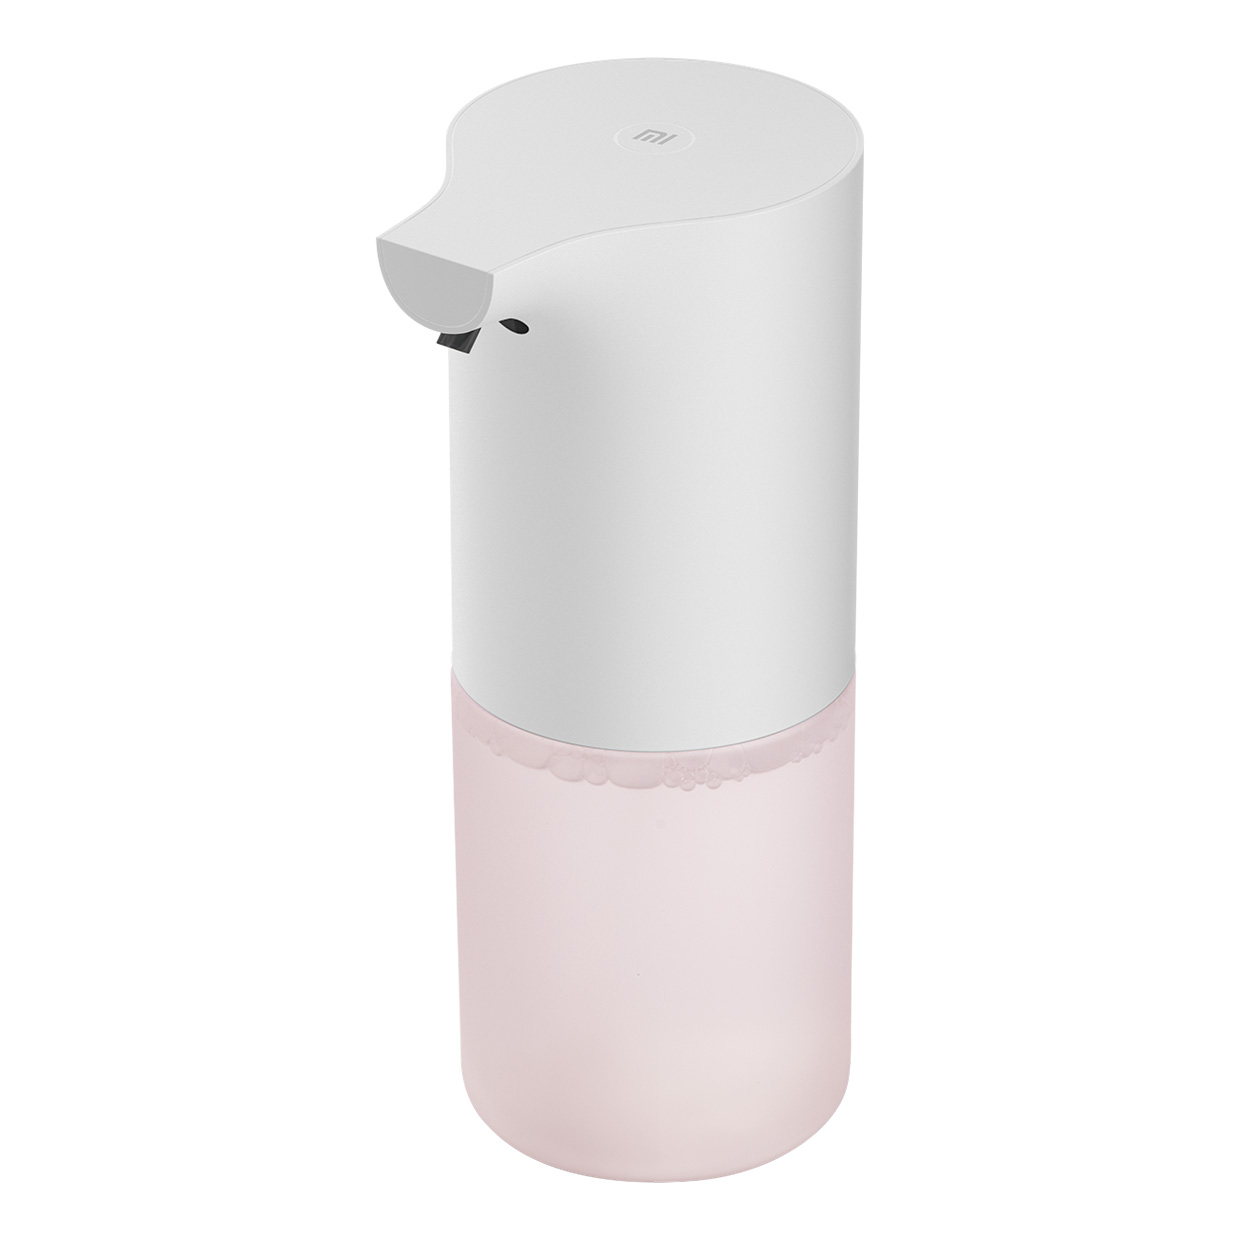 Xiaomi Mi Automatic Foaming Soap Dispenser